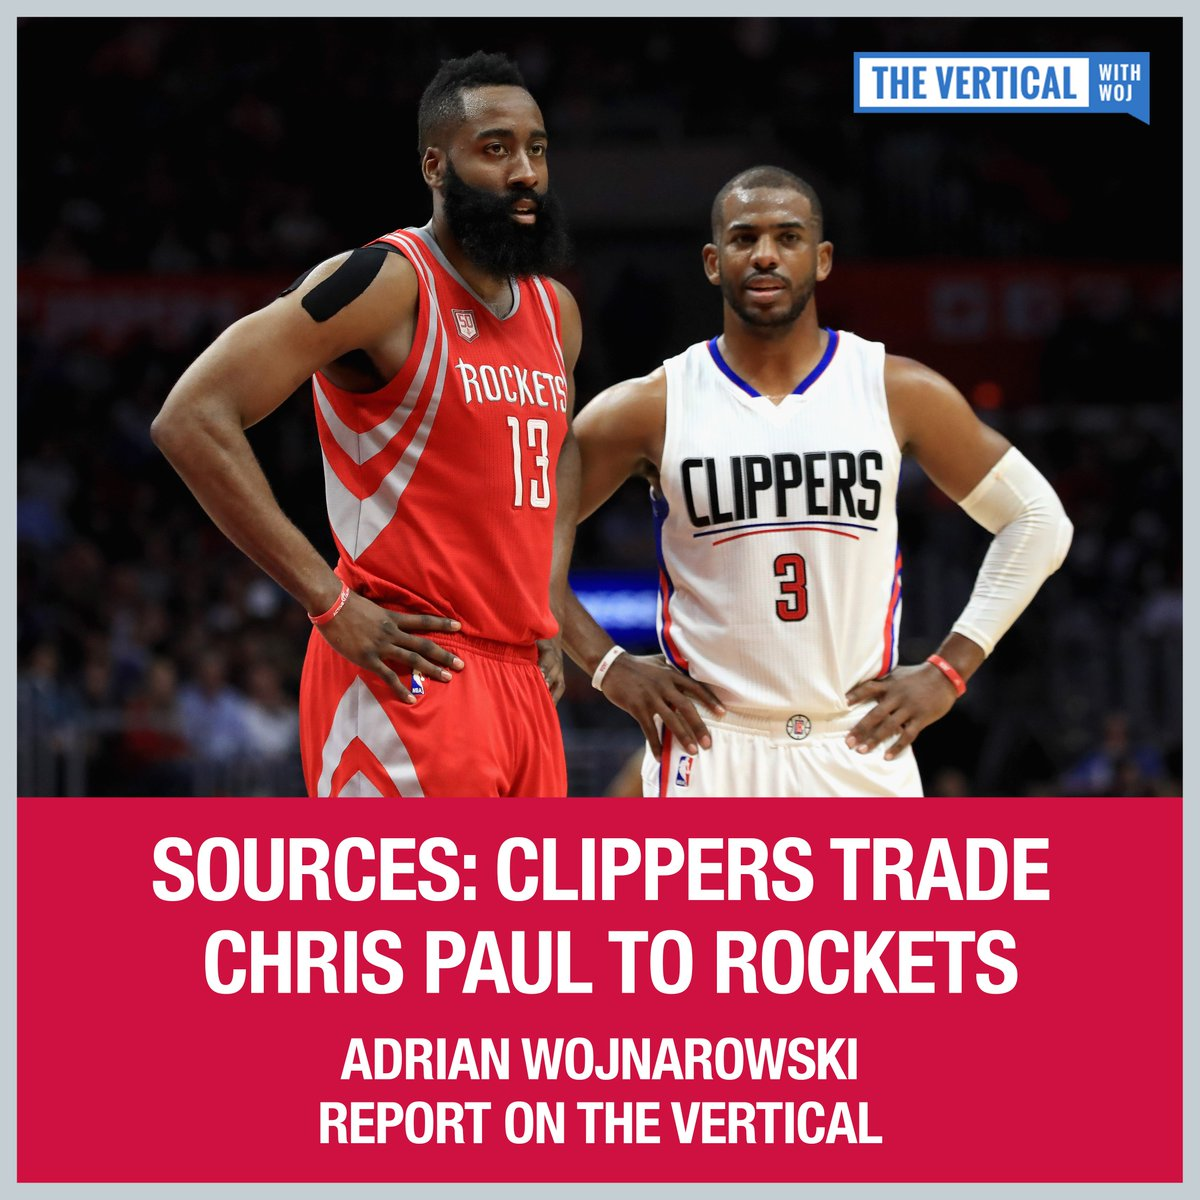 The Rockets are pairing Chris Paul with James Harden. @WojVerticalNBA...